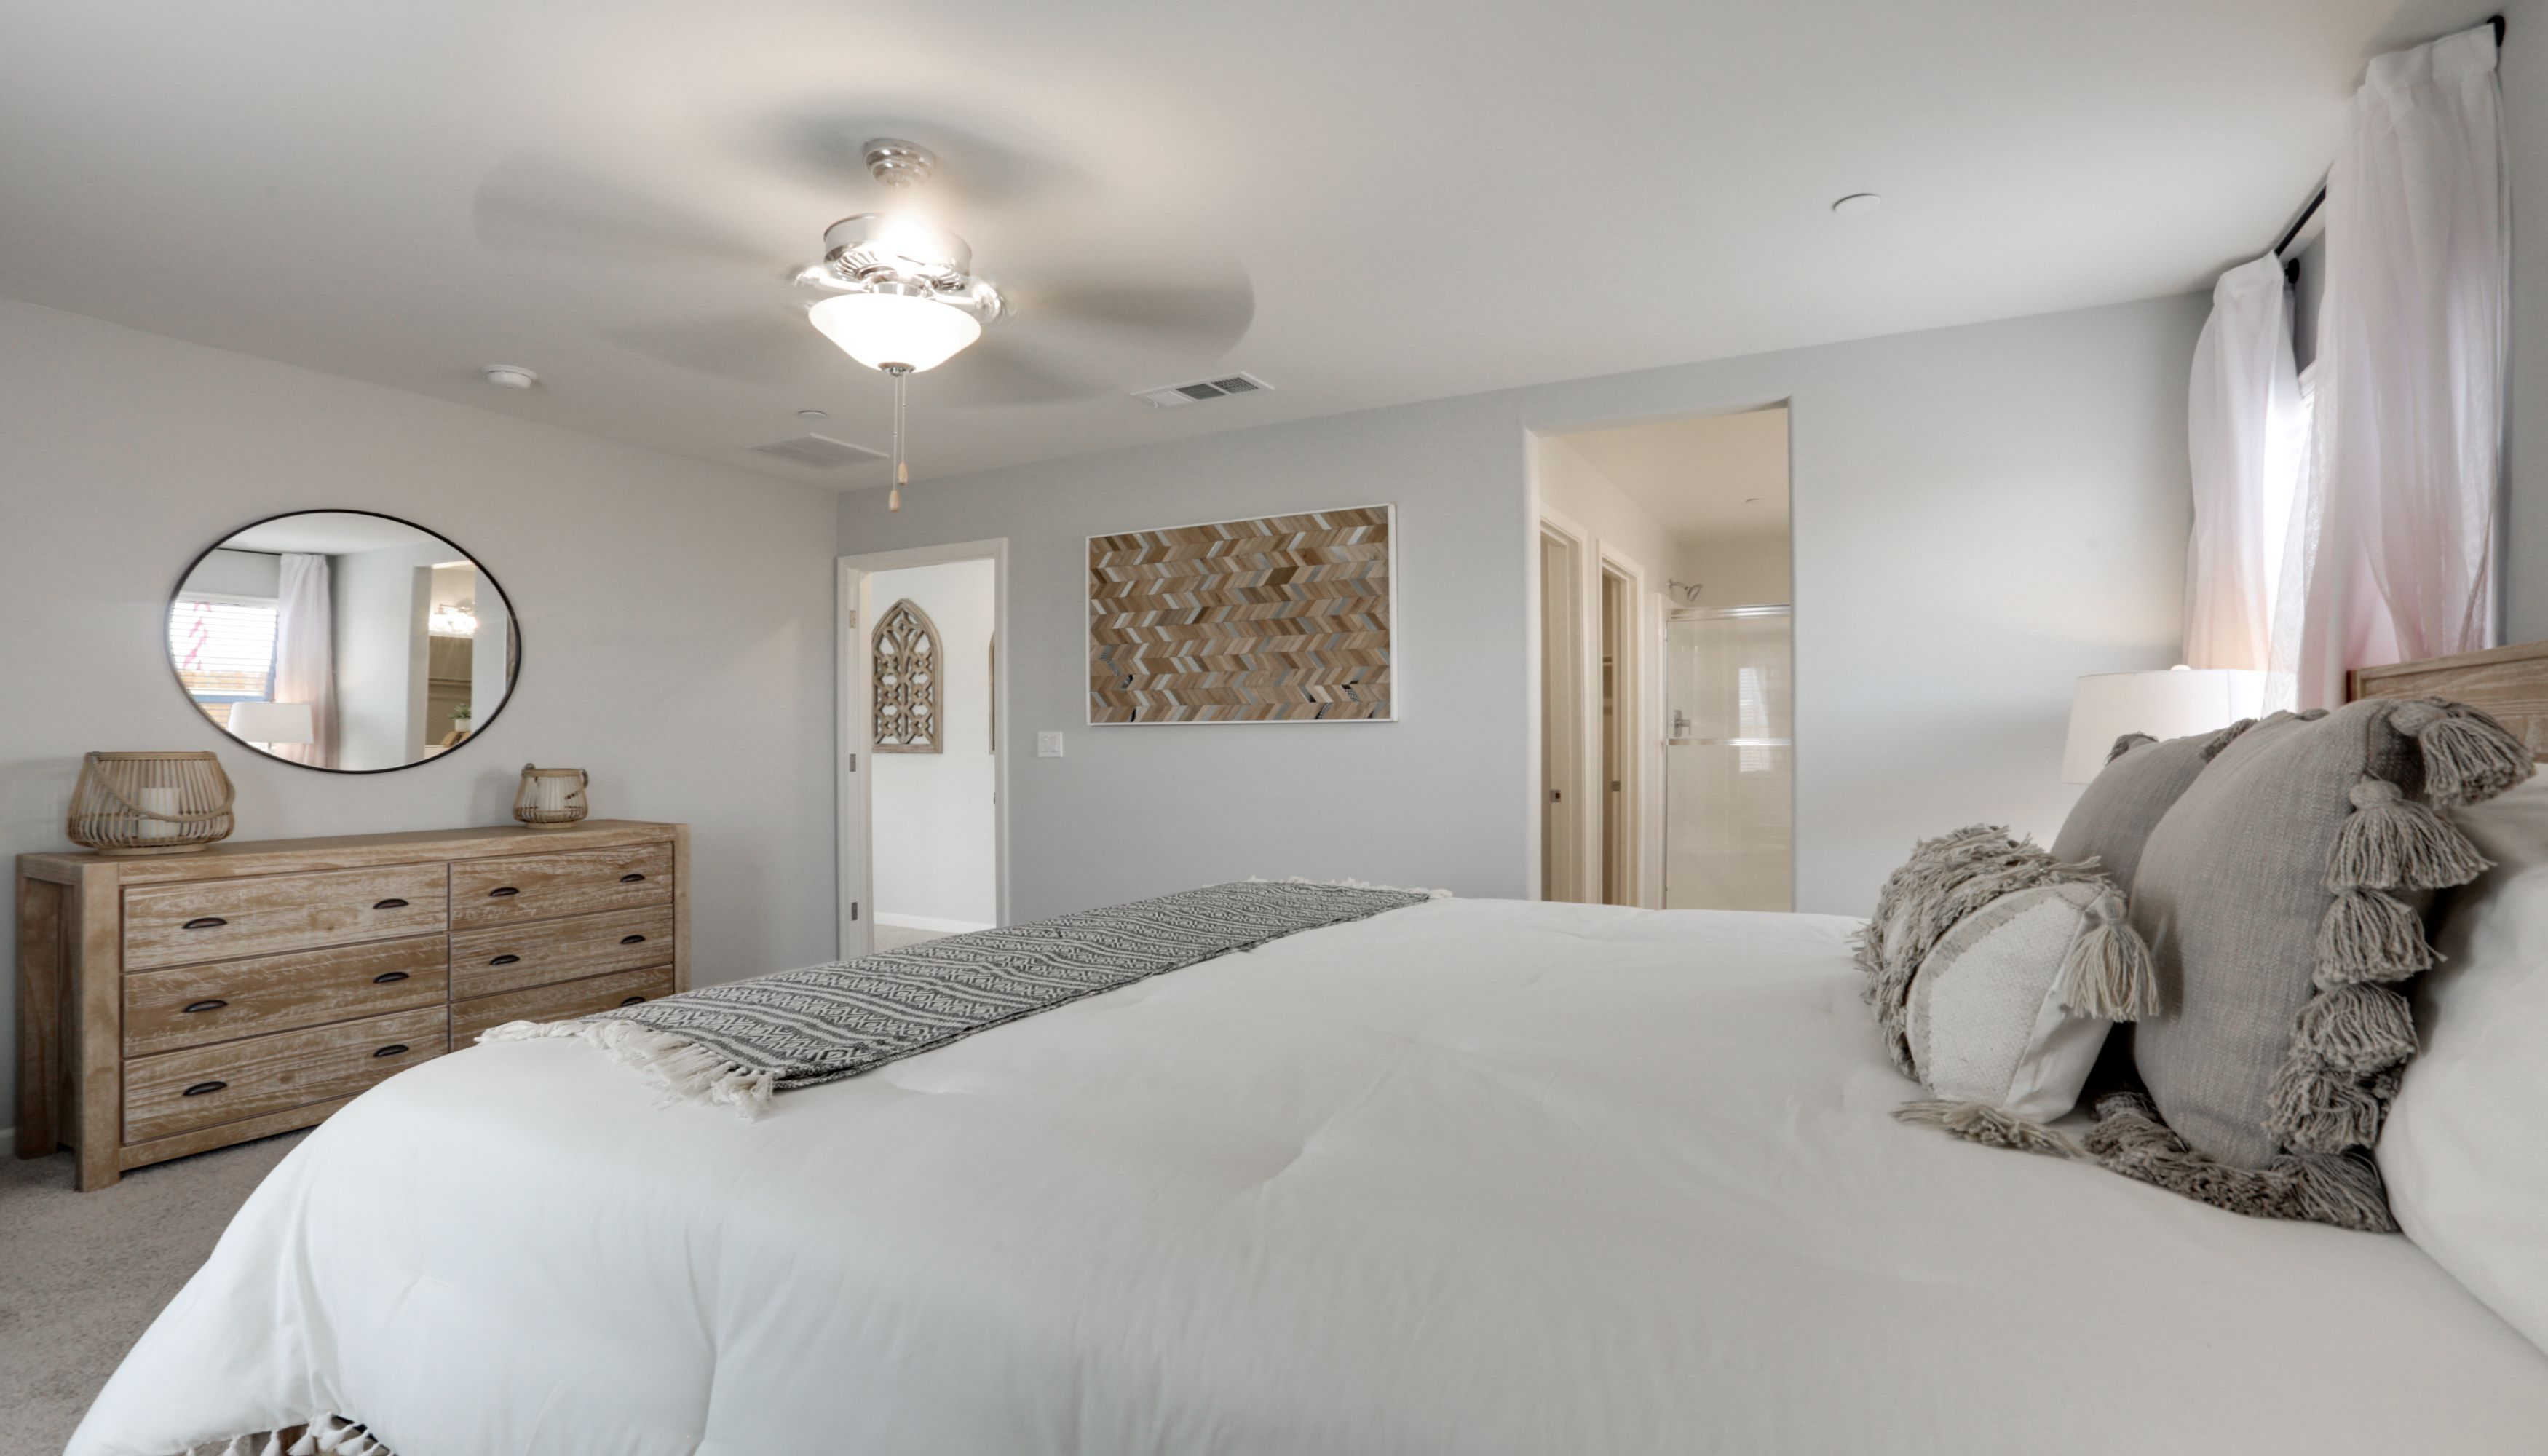 Bedroom featured in the Coolidge By D.R. Horton in Bakersfield, CA